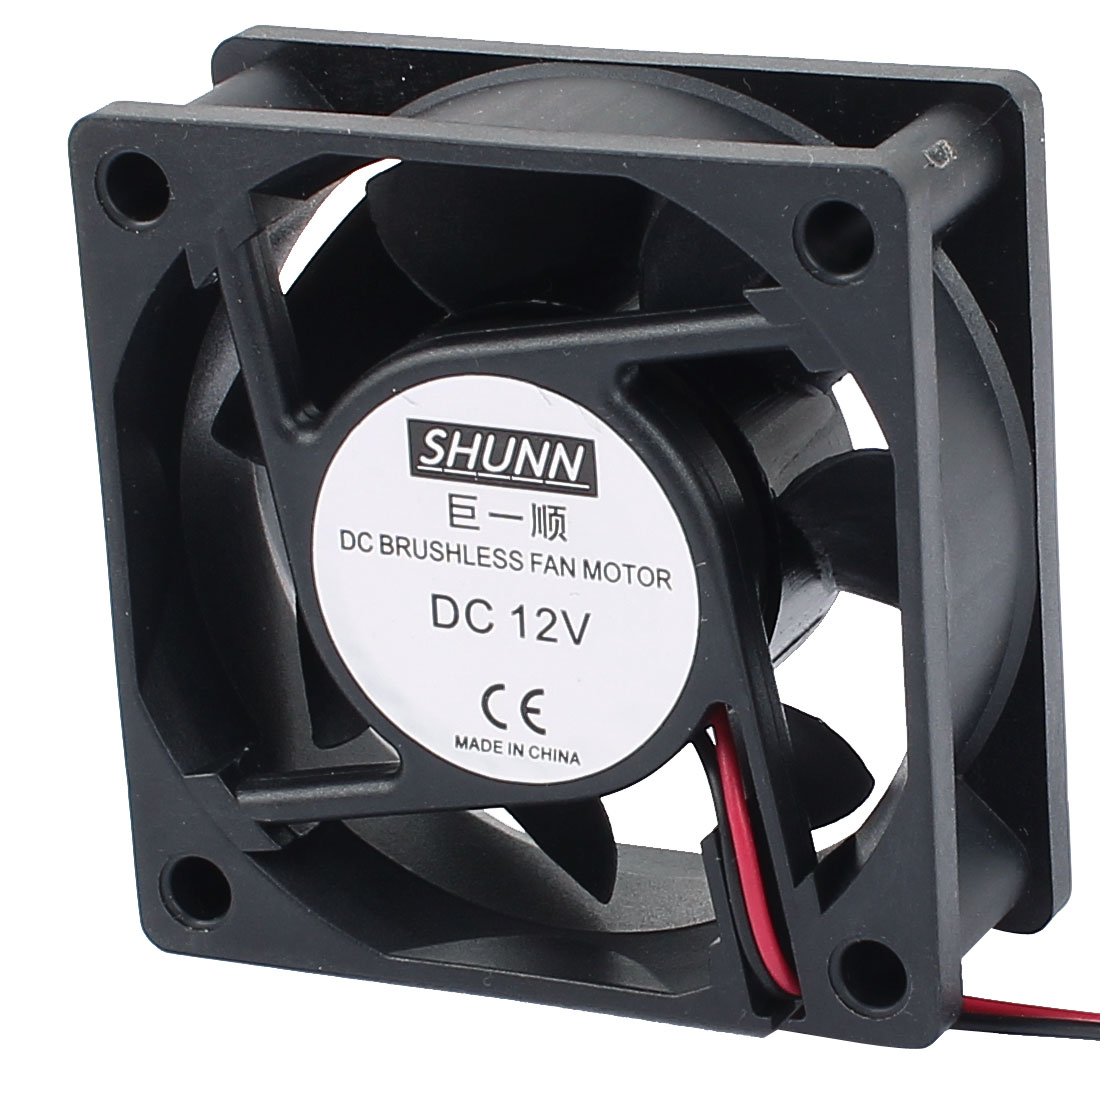 DC12V 60mmx60mmx24mm 7 Vanes DC Brushless Fan Motor PC Case Cooling Fan Cooler